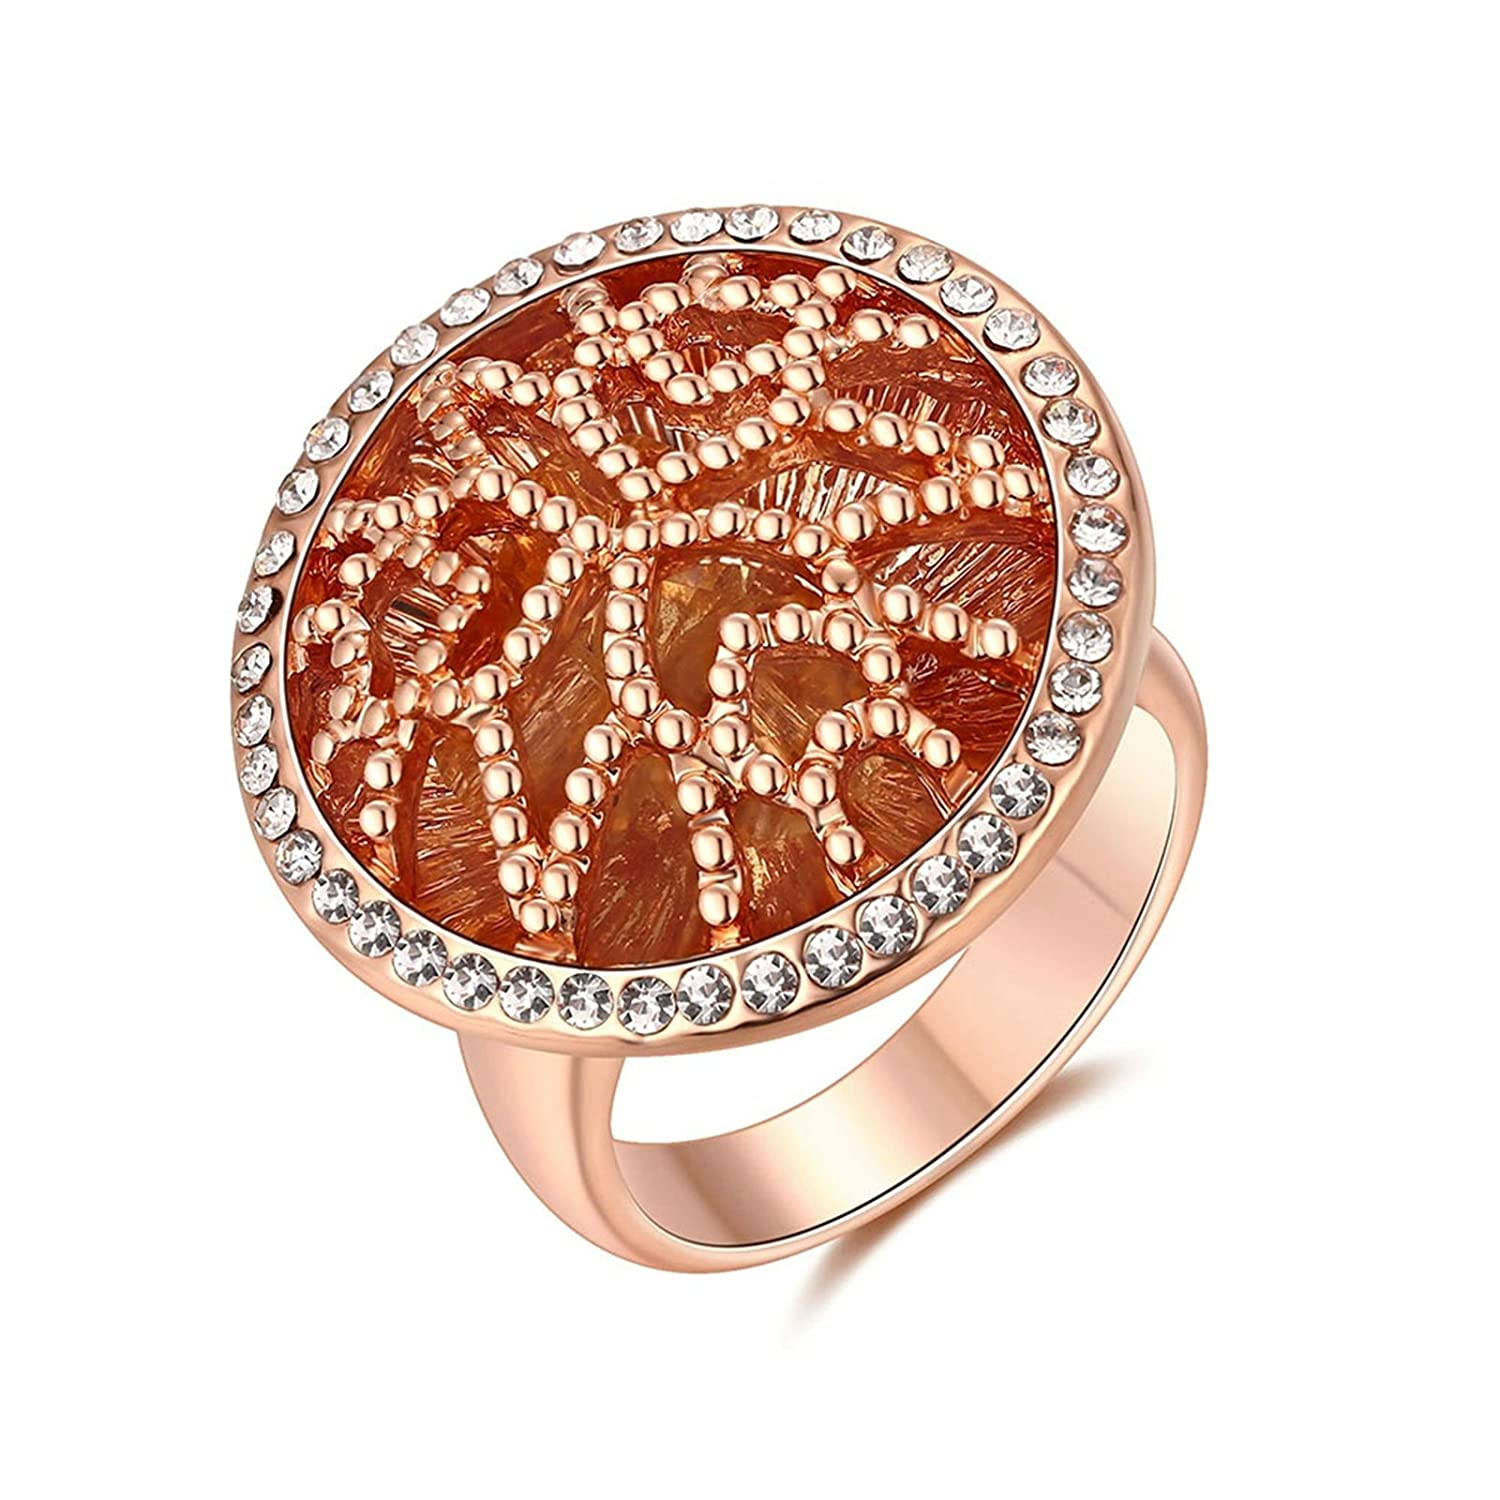 ANAZOZ Silver Plated Base Promise Ring for Women Hollow Pattern AP330